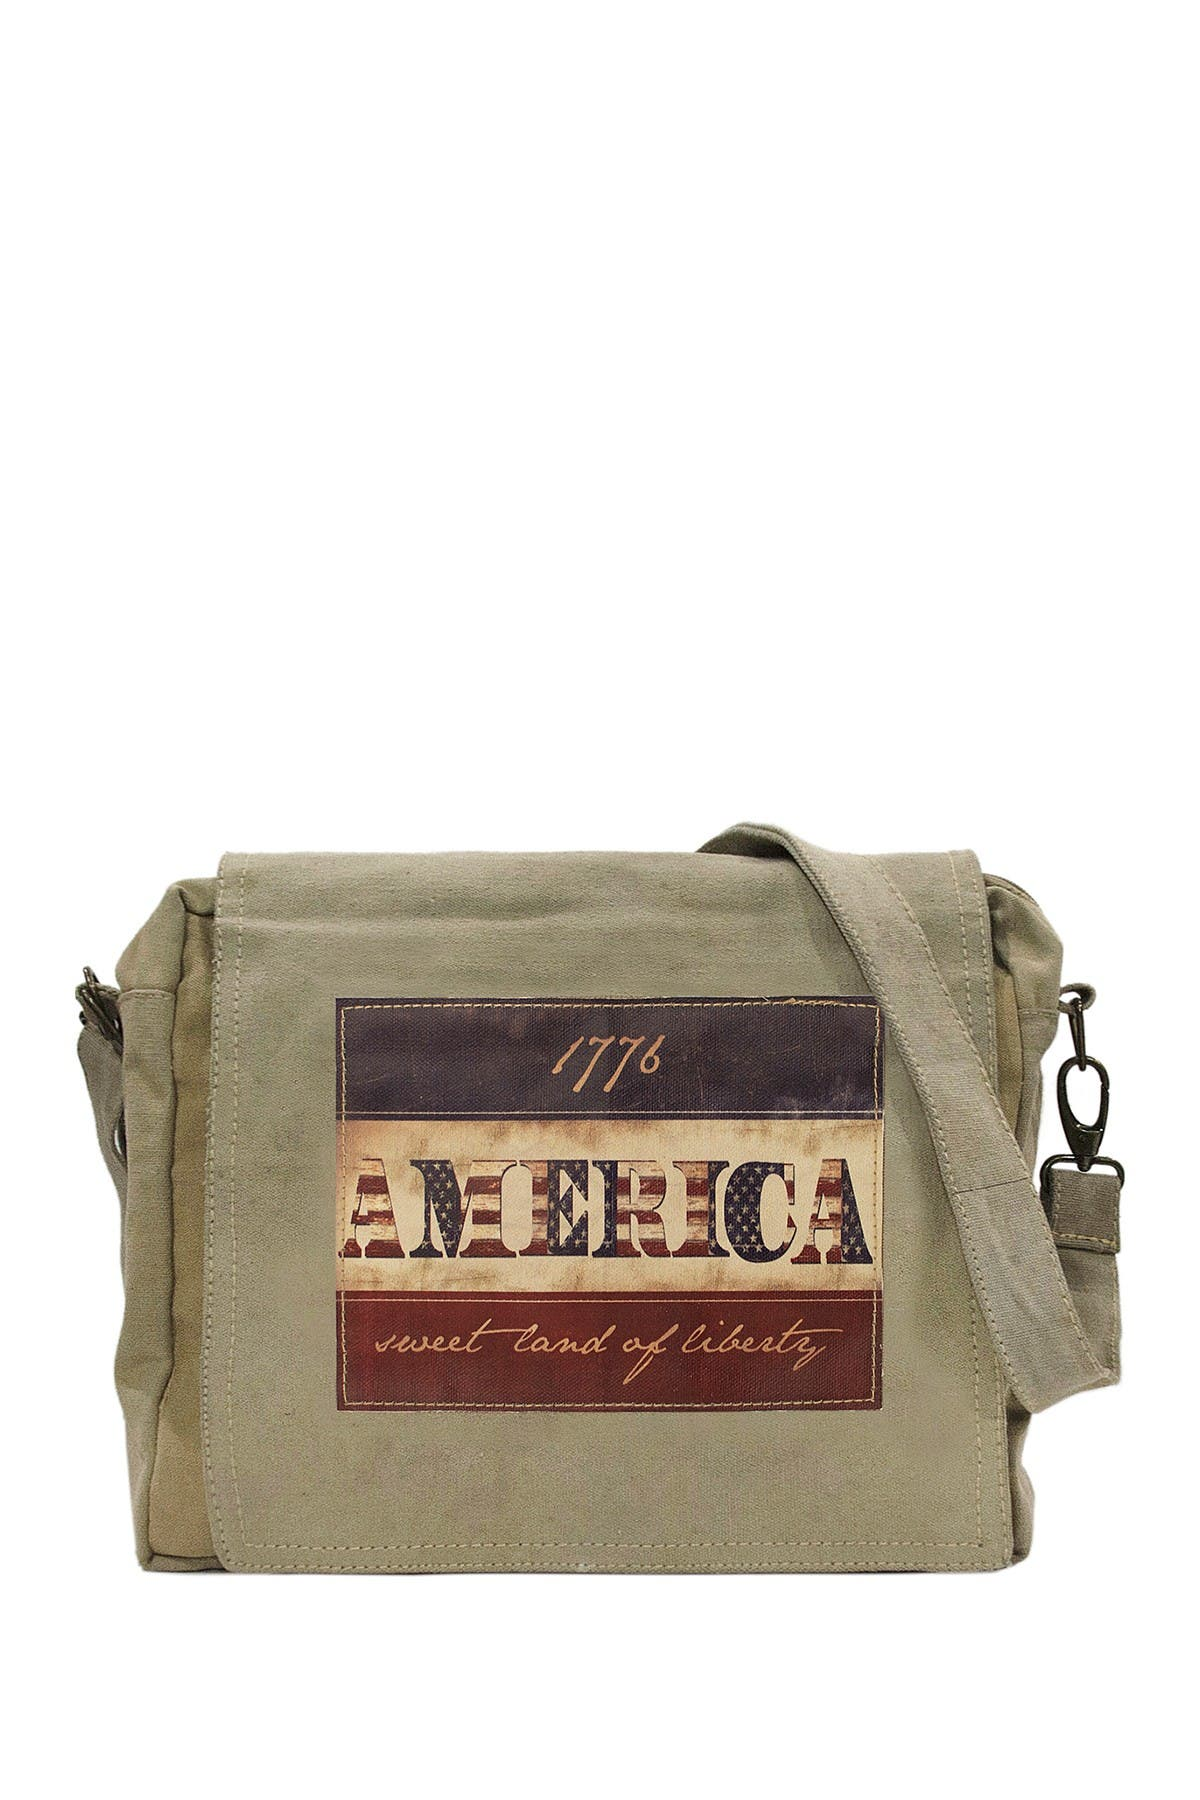 Image of Vintage Addiction 1776 Flag Recycled Military Tent Crossbody Bag